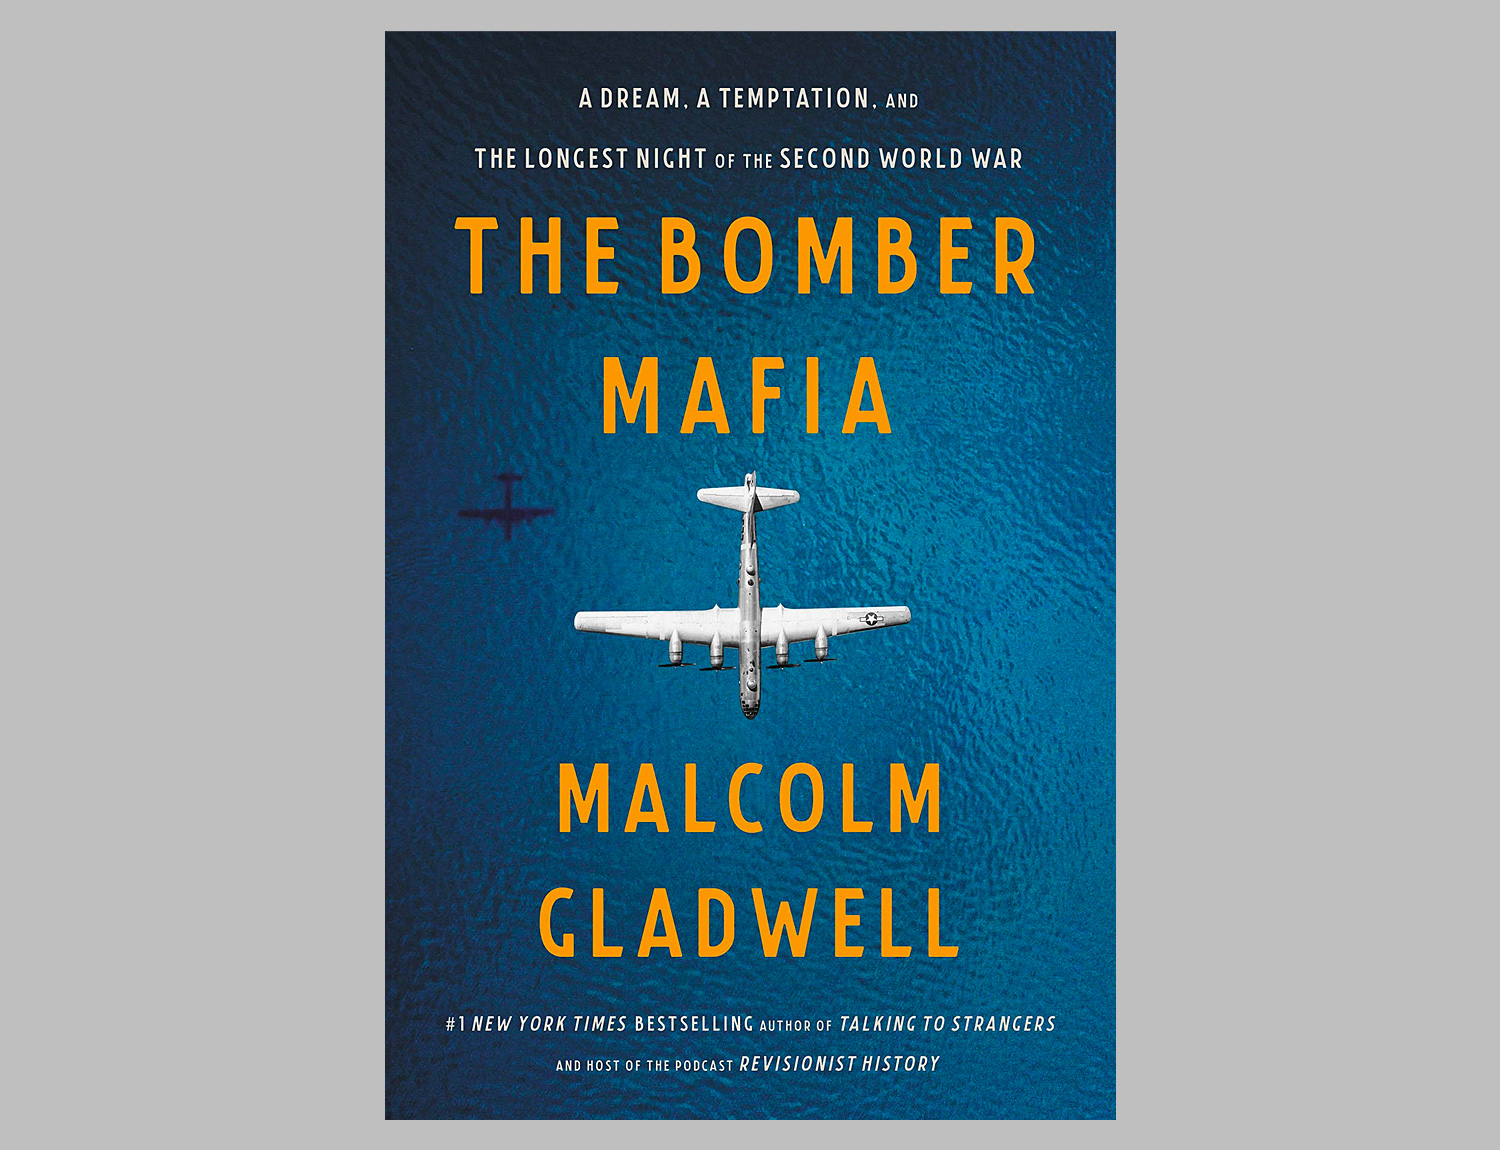 The Bomber Mafia: A Dream, a Temptation, & the Longest Night of the Second World War at werd.com